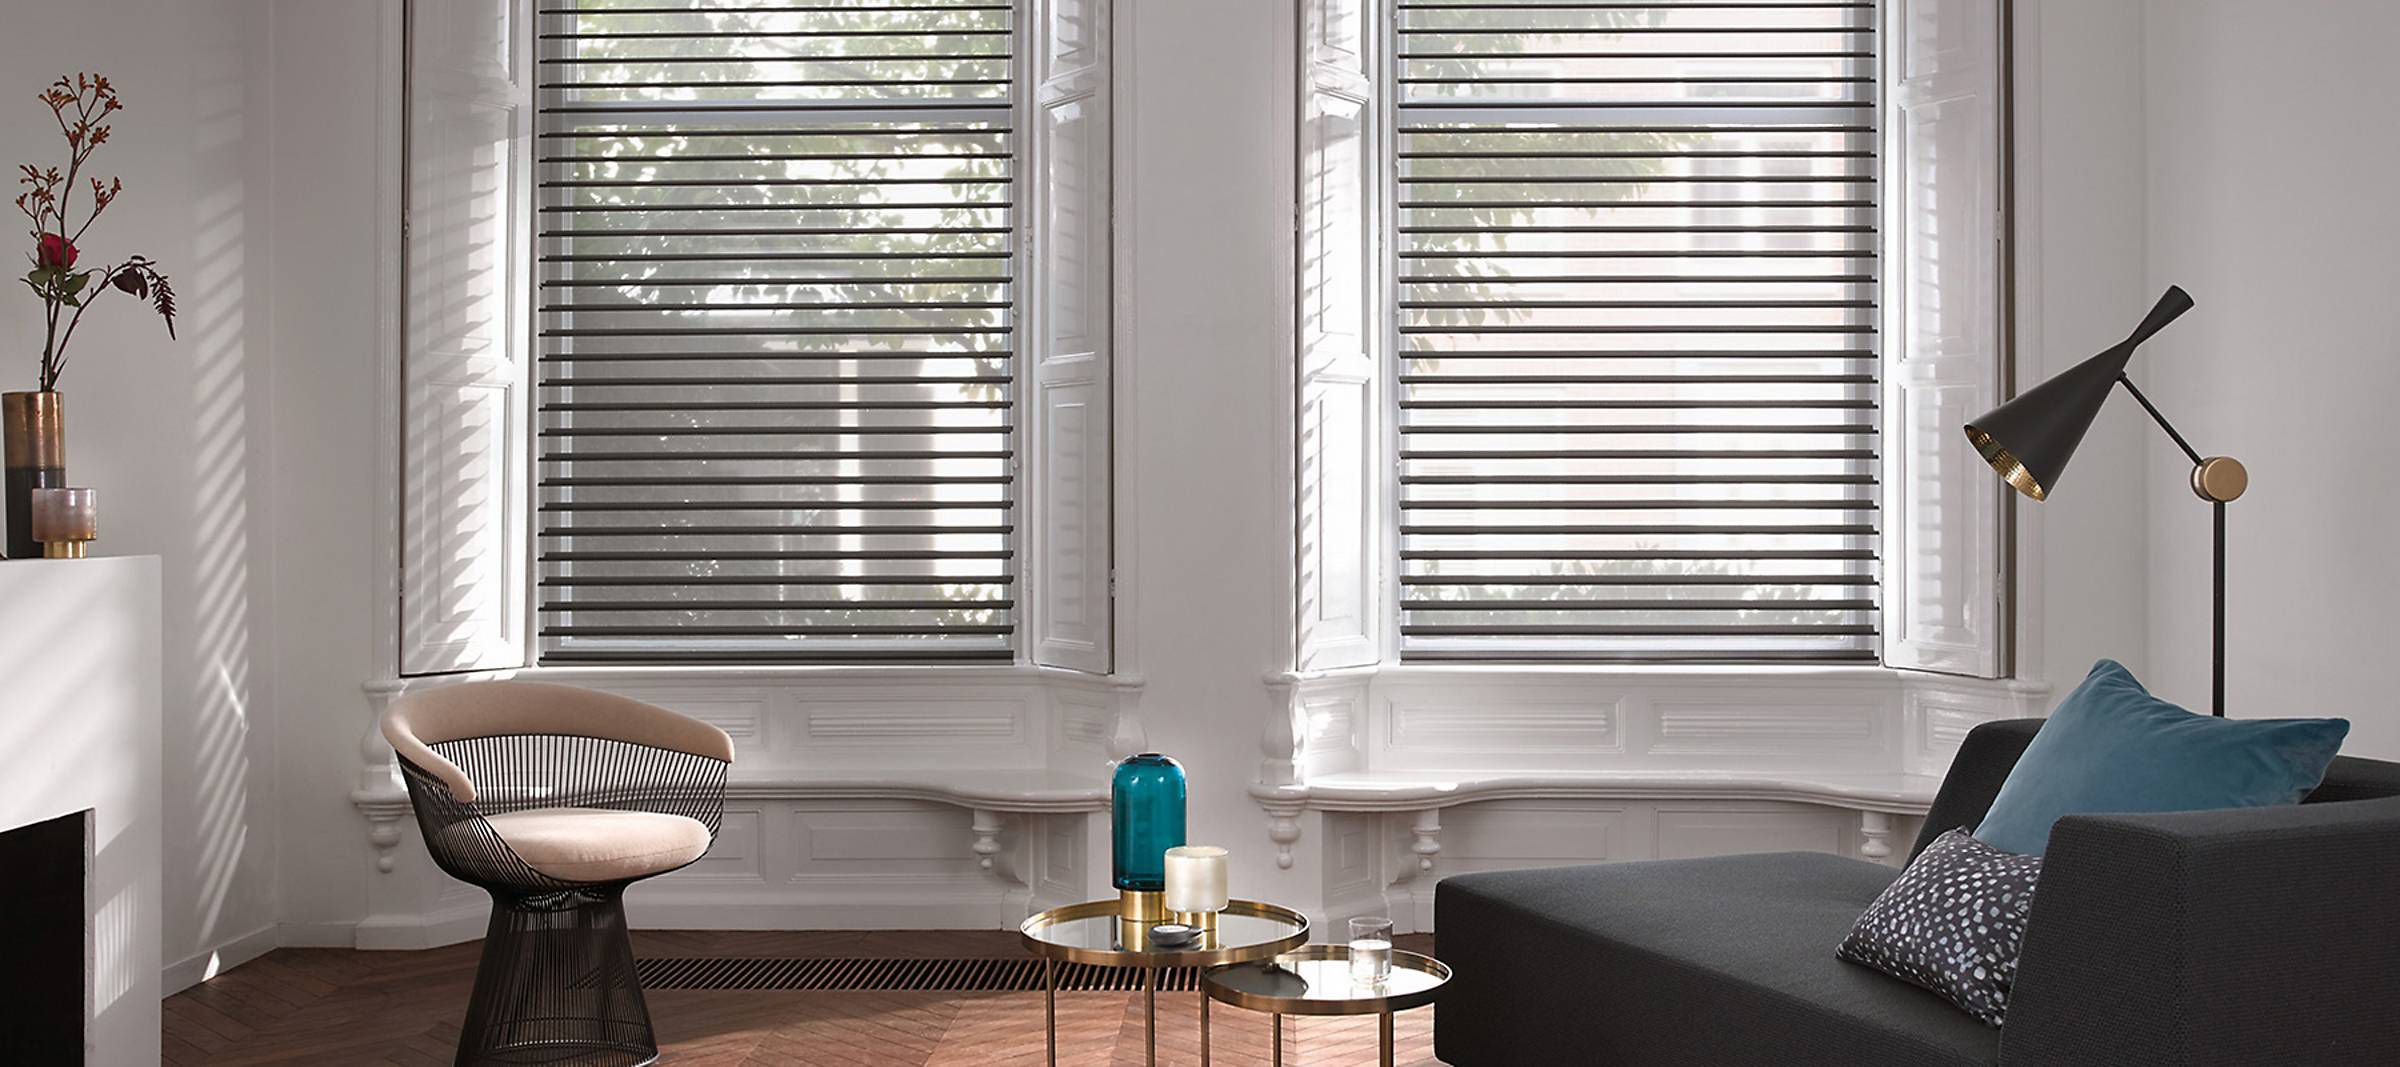 E Screen Blinds Specialist Blinds Services